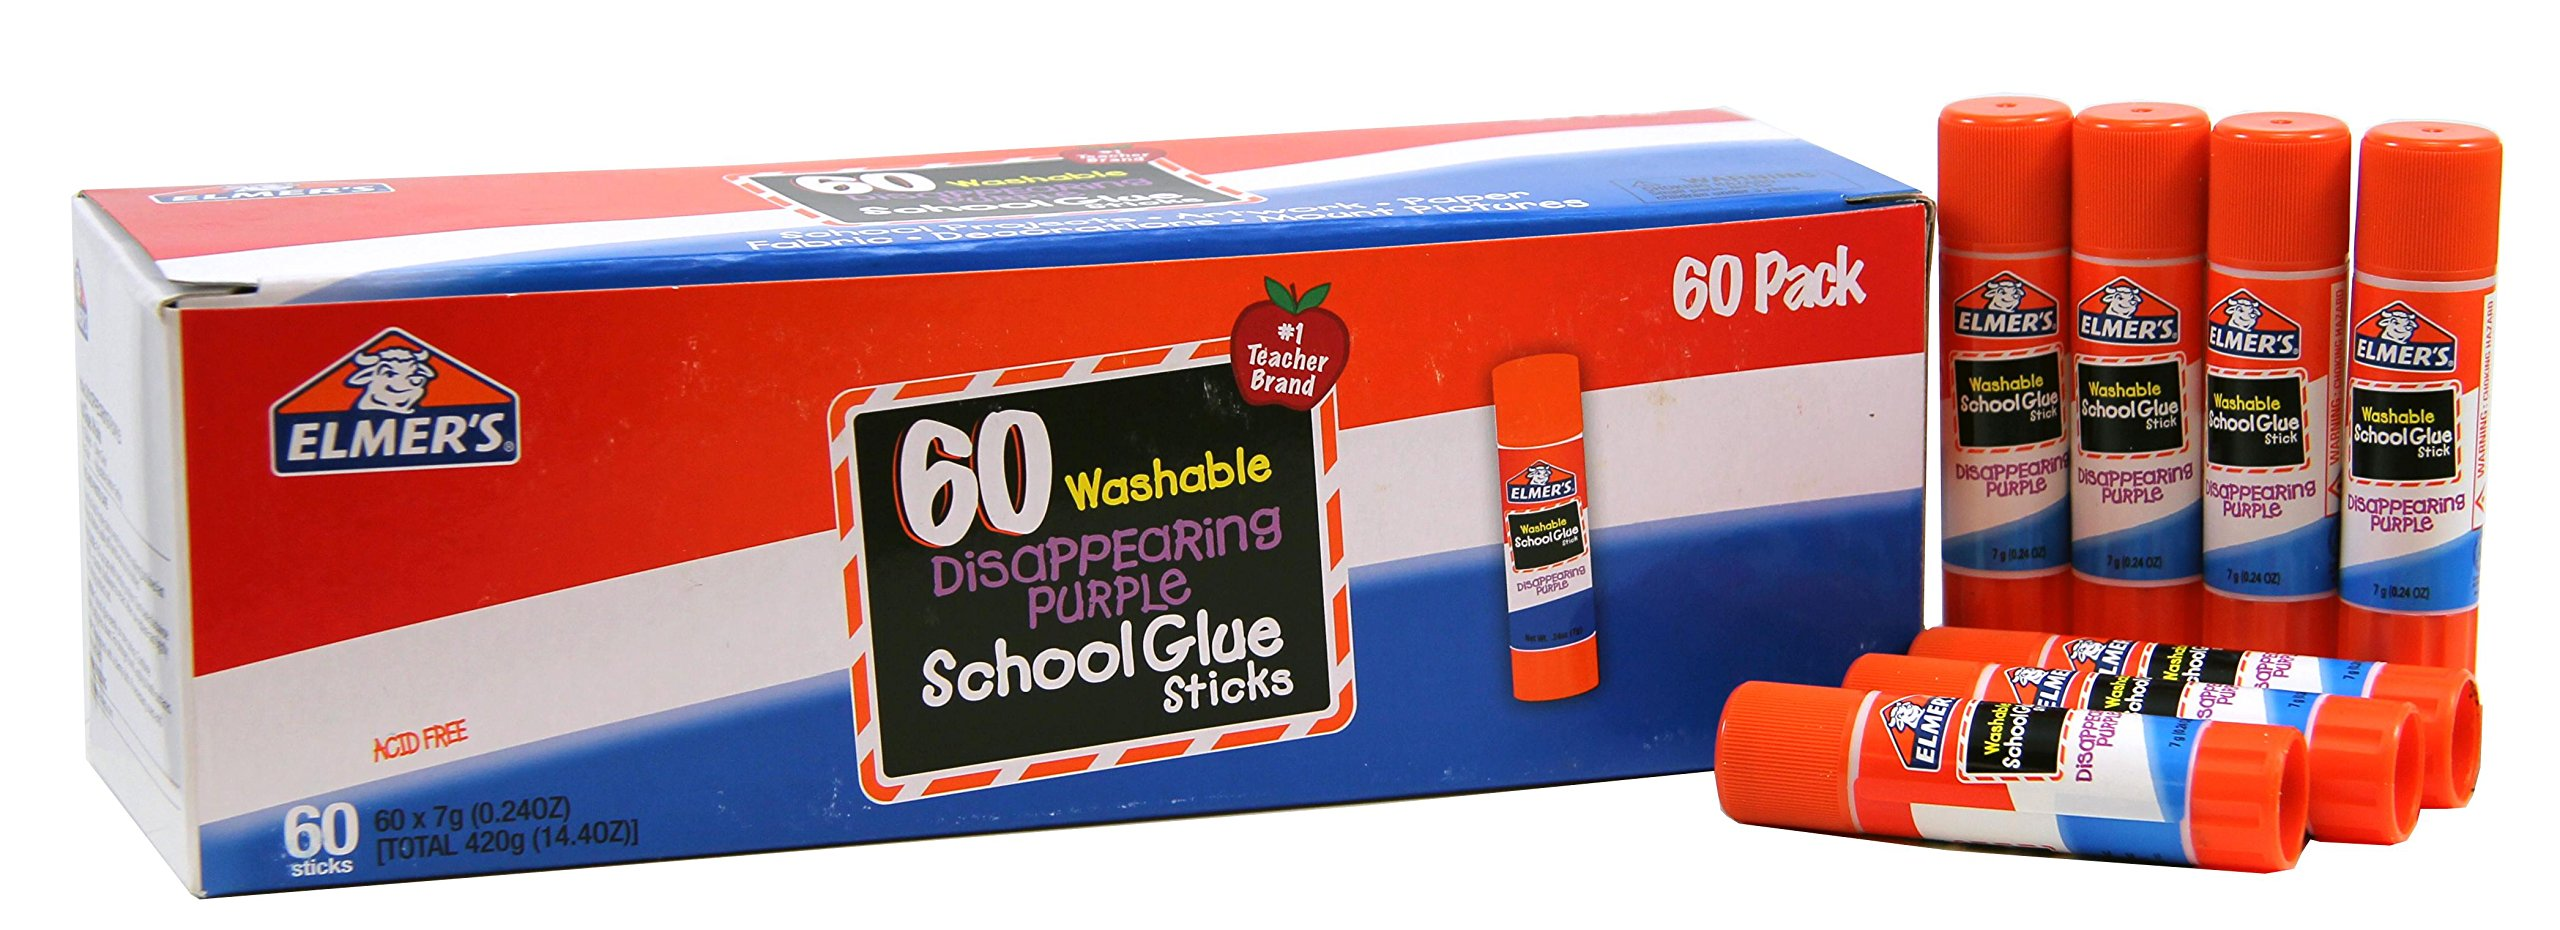 Elmer's Disappearing Purple School Glue, Washable, 60 Pack, 0.24-ounce sticks